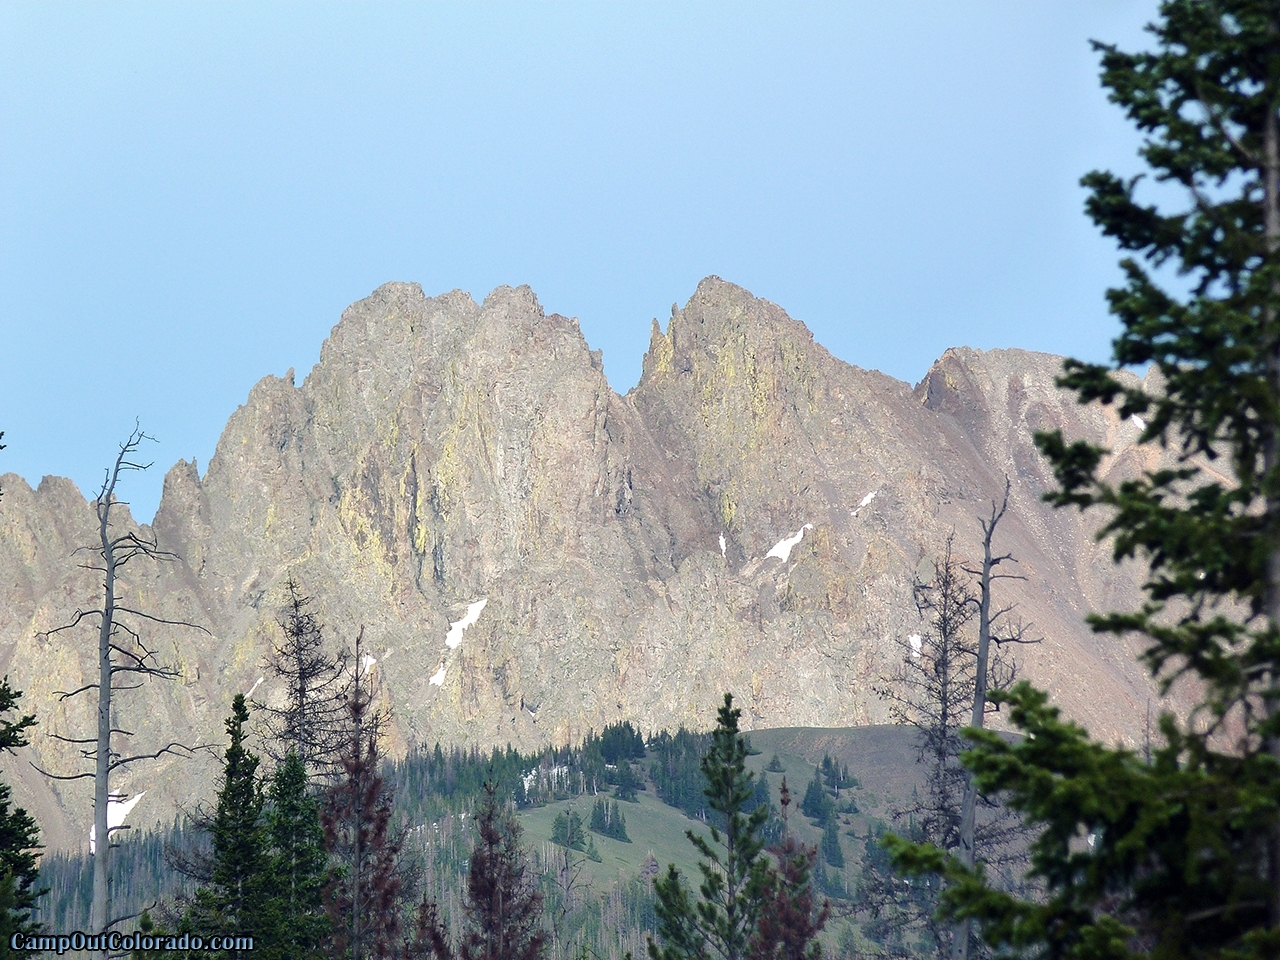 camp-out-colorado-ranger-lakes-campground-mountain-peaks.jpg